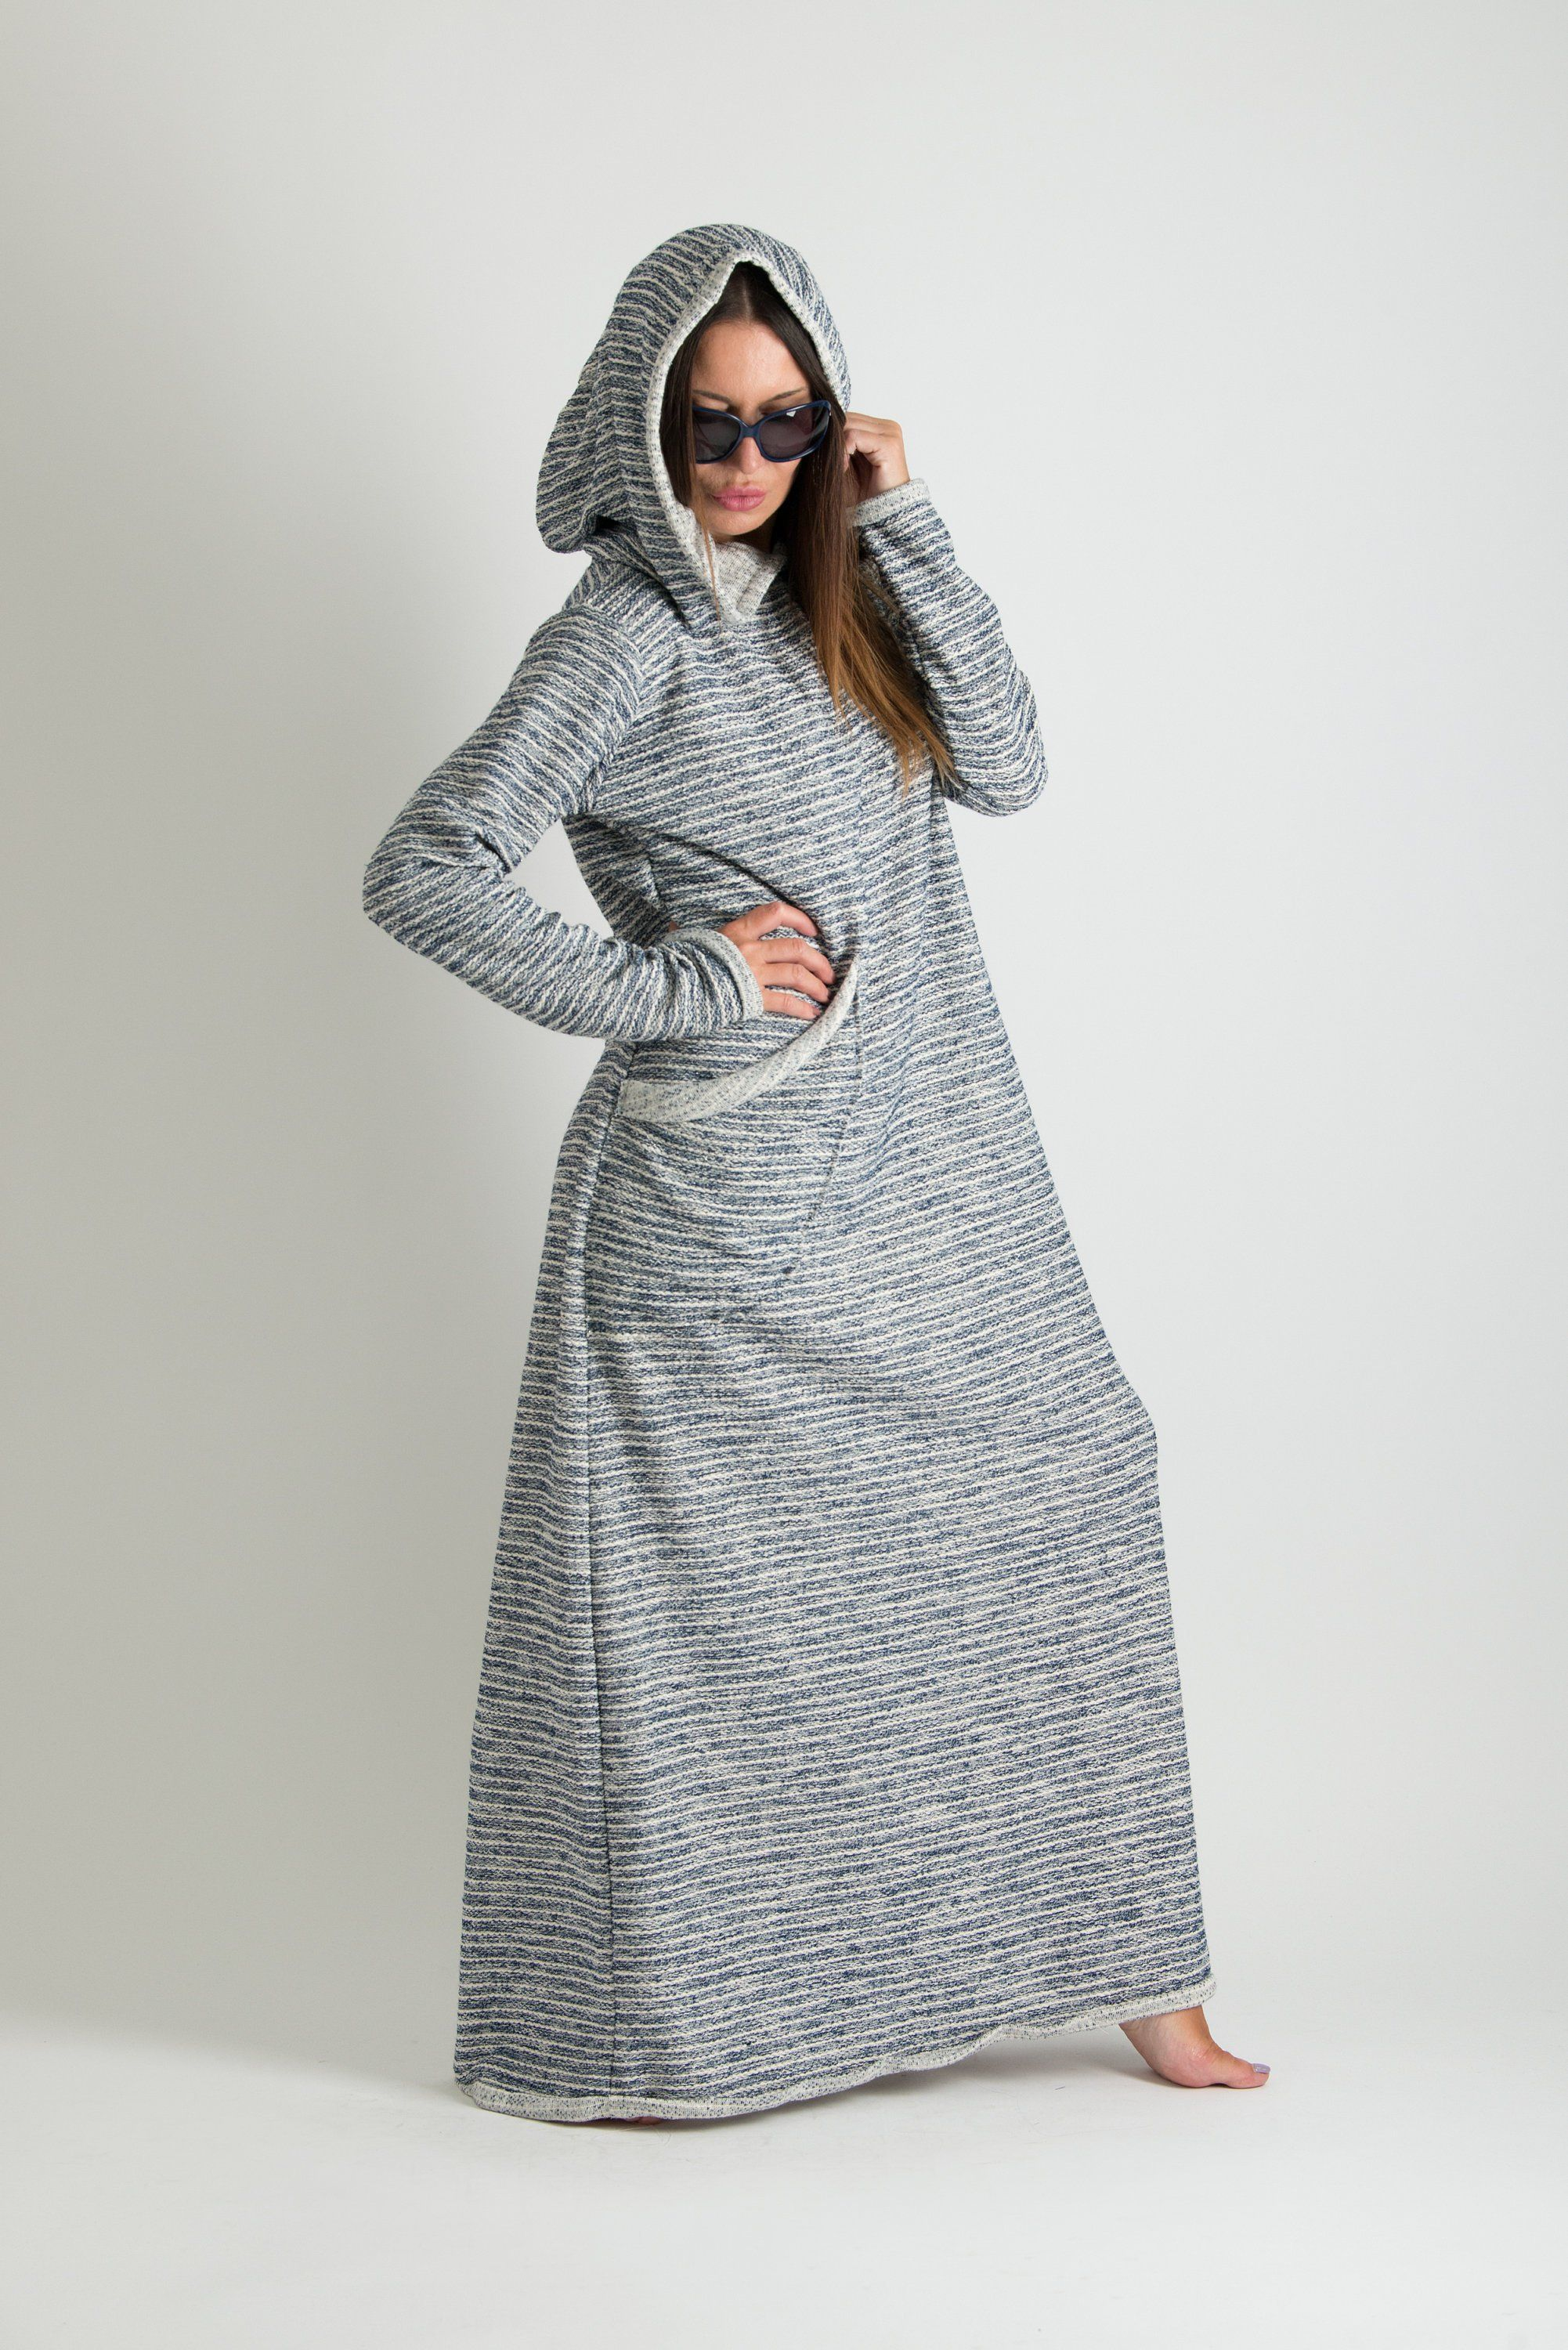 Autumn blue hoodie dress plus size long women maxi dress hooded